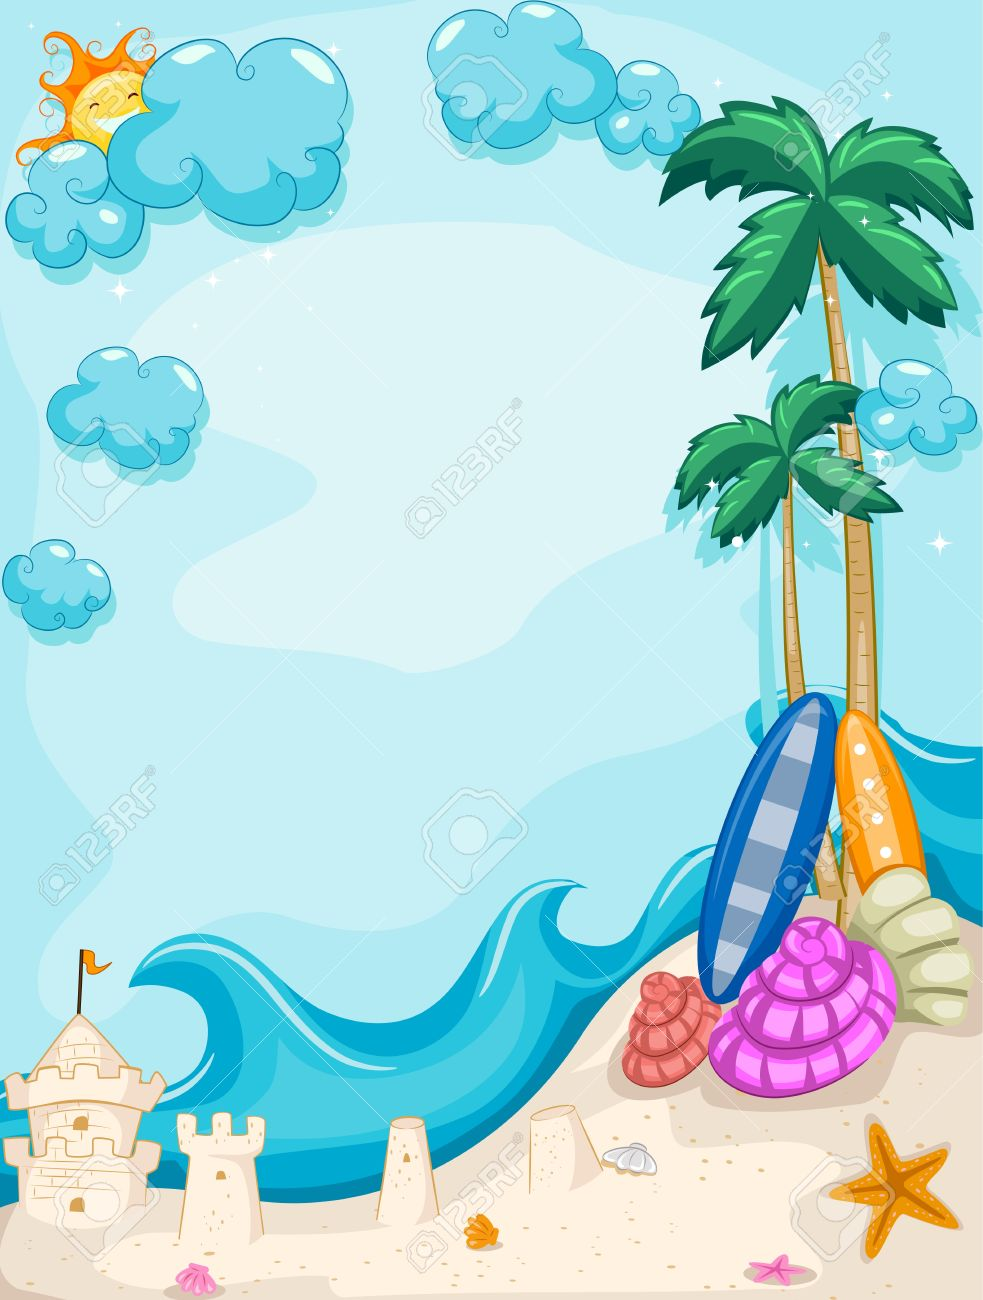 The Sea clipart beach background Clipart frame by vertical sand